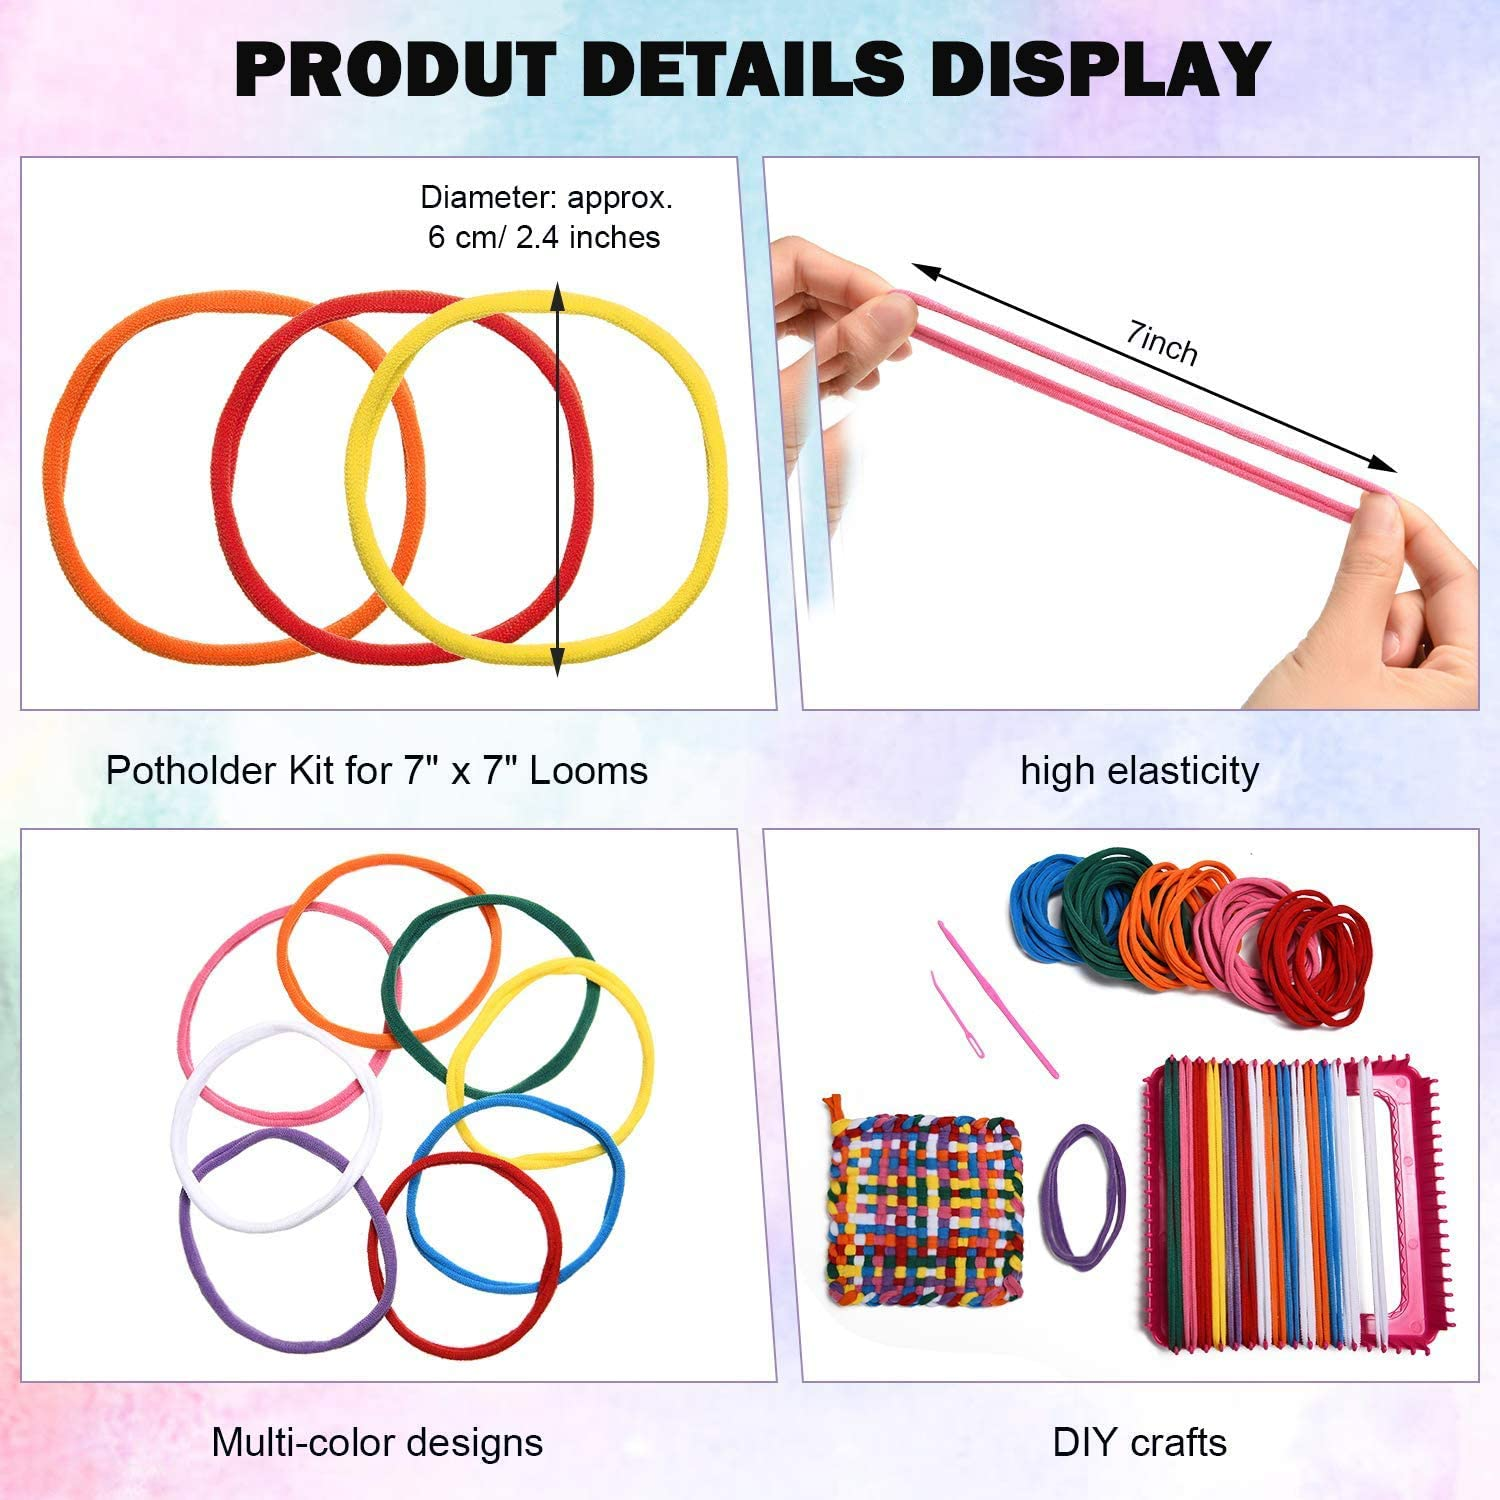 Eeoyu 192 Pieces Loom Potholder Loops Weaving Loom Loops with Multiple Colors for Kids DIY Crafts Supplies